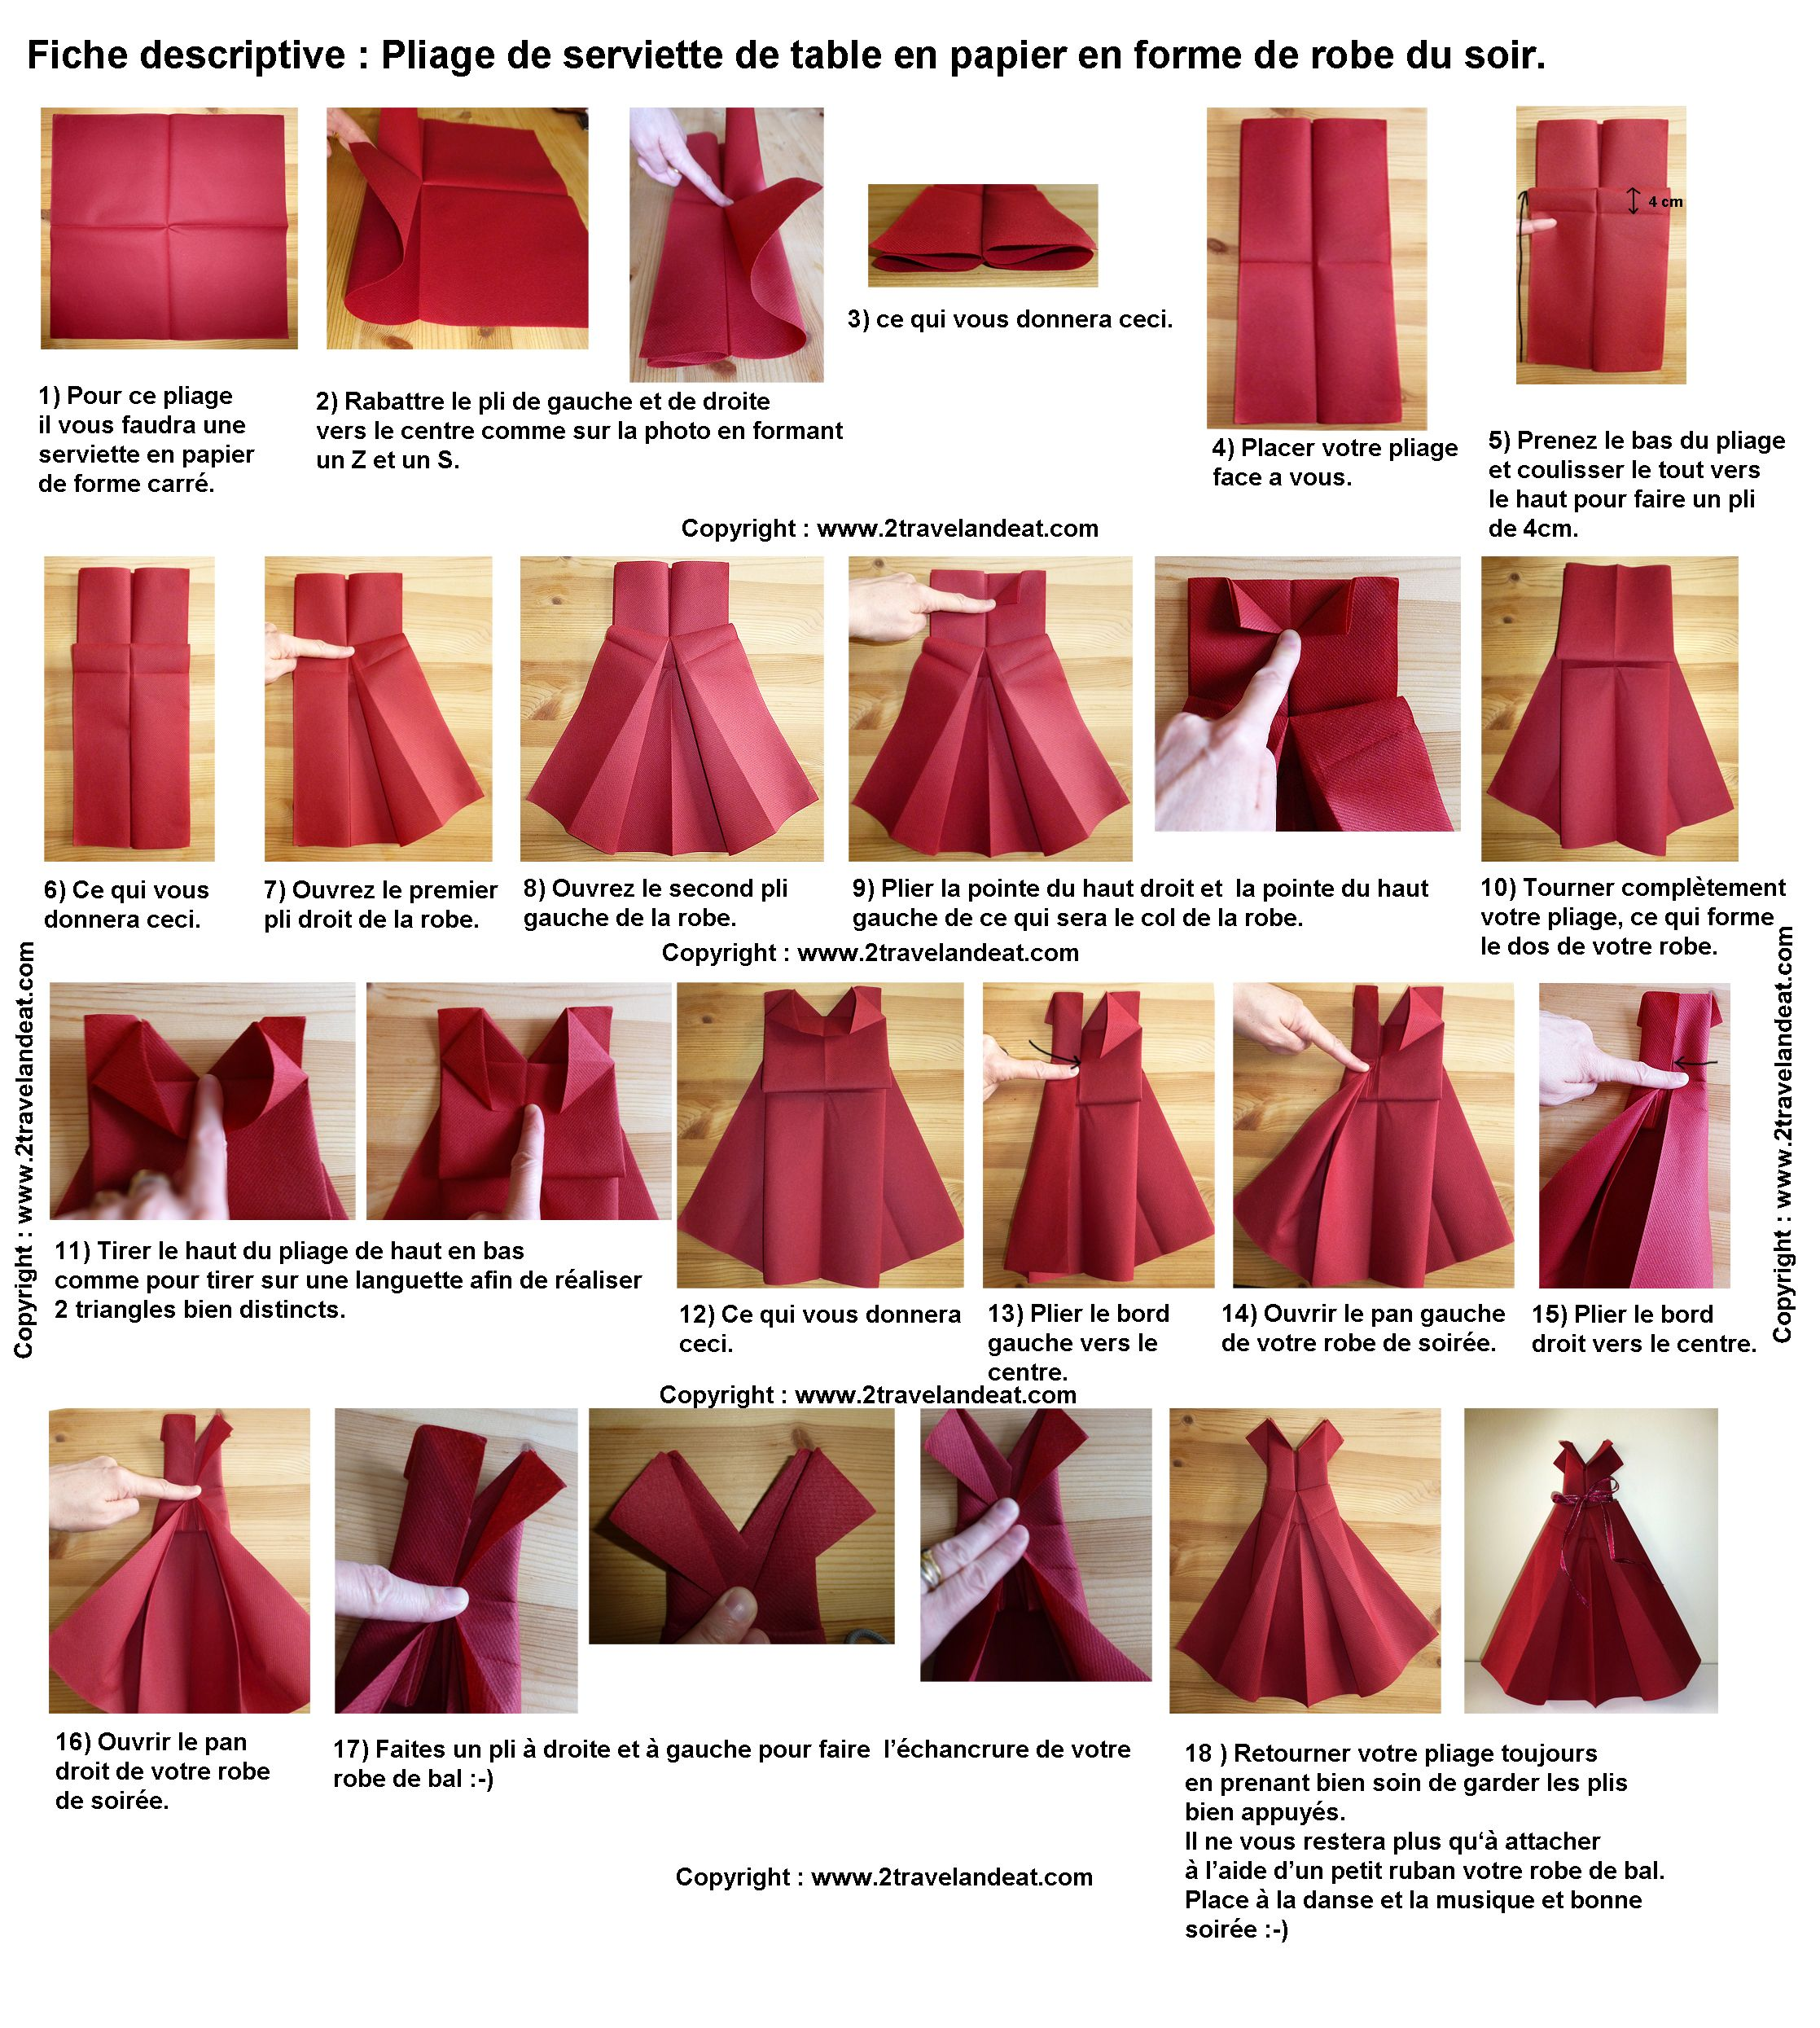 Folding Paper Towel In The Shape Of Evening Dress Folding A